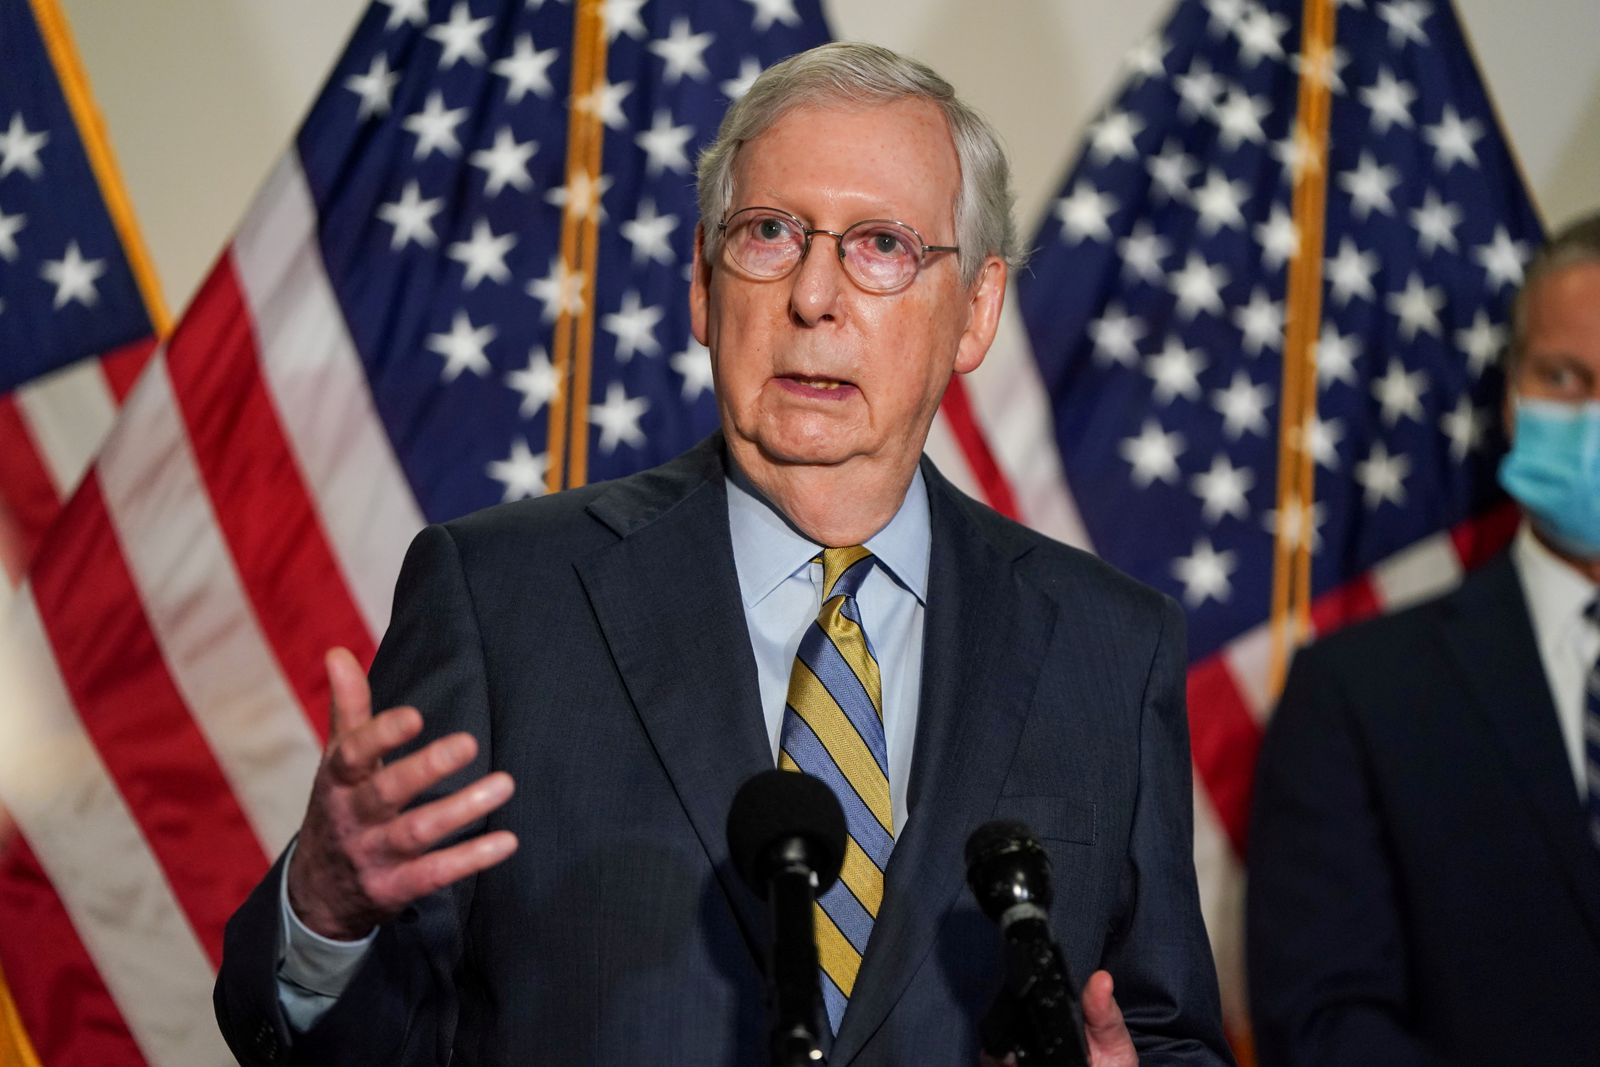 FILE PHOTO: Senate Majority Leader Mitch McConnell (R-KY) speaks to the media in Washington